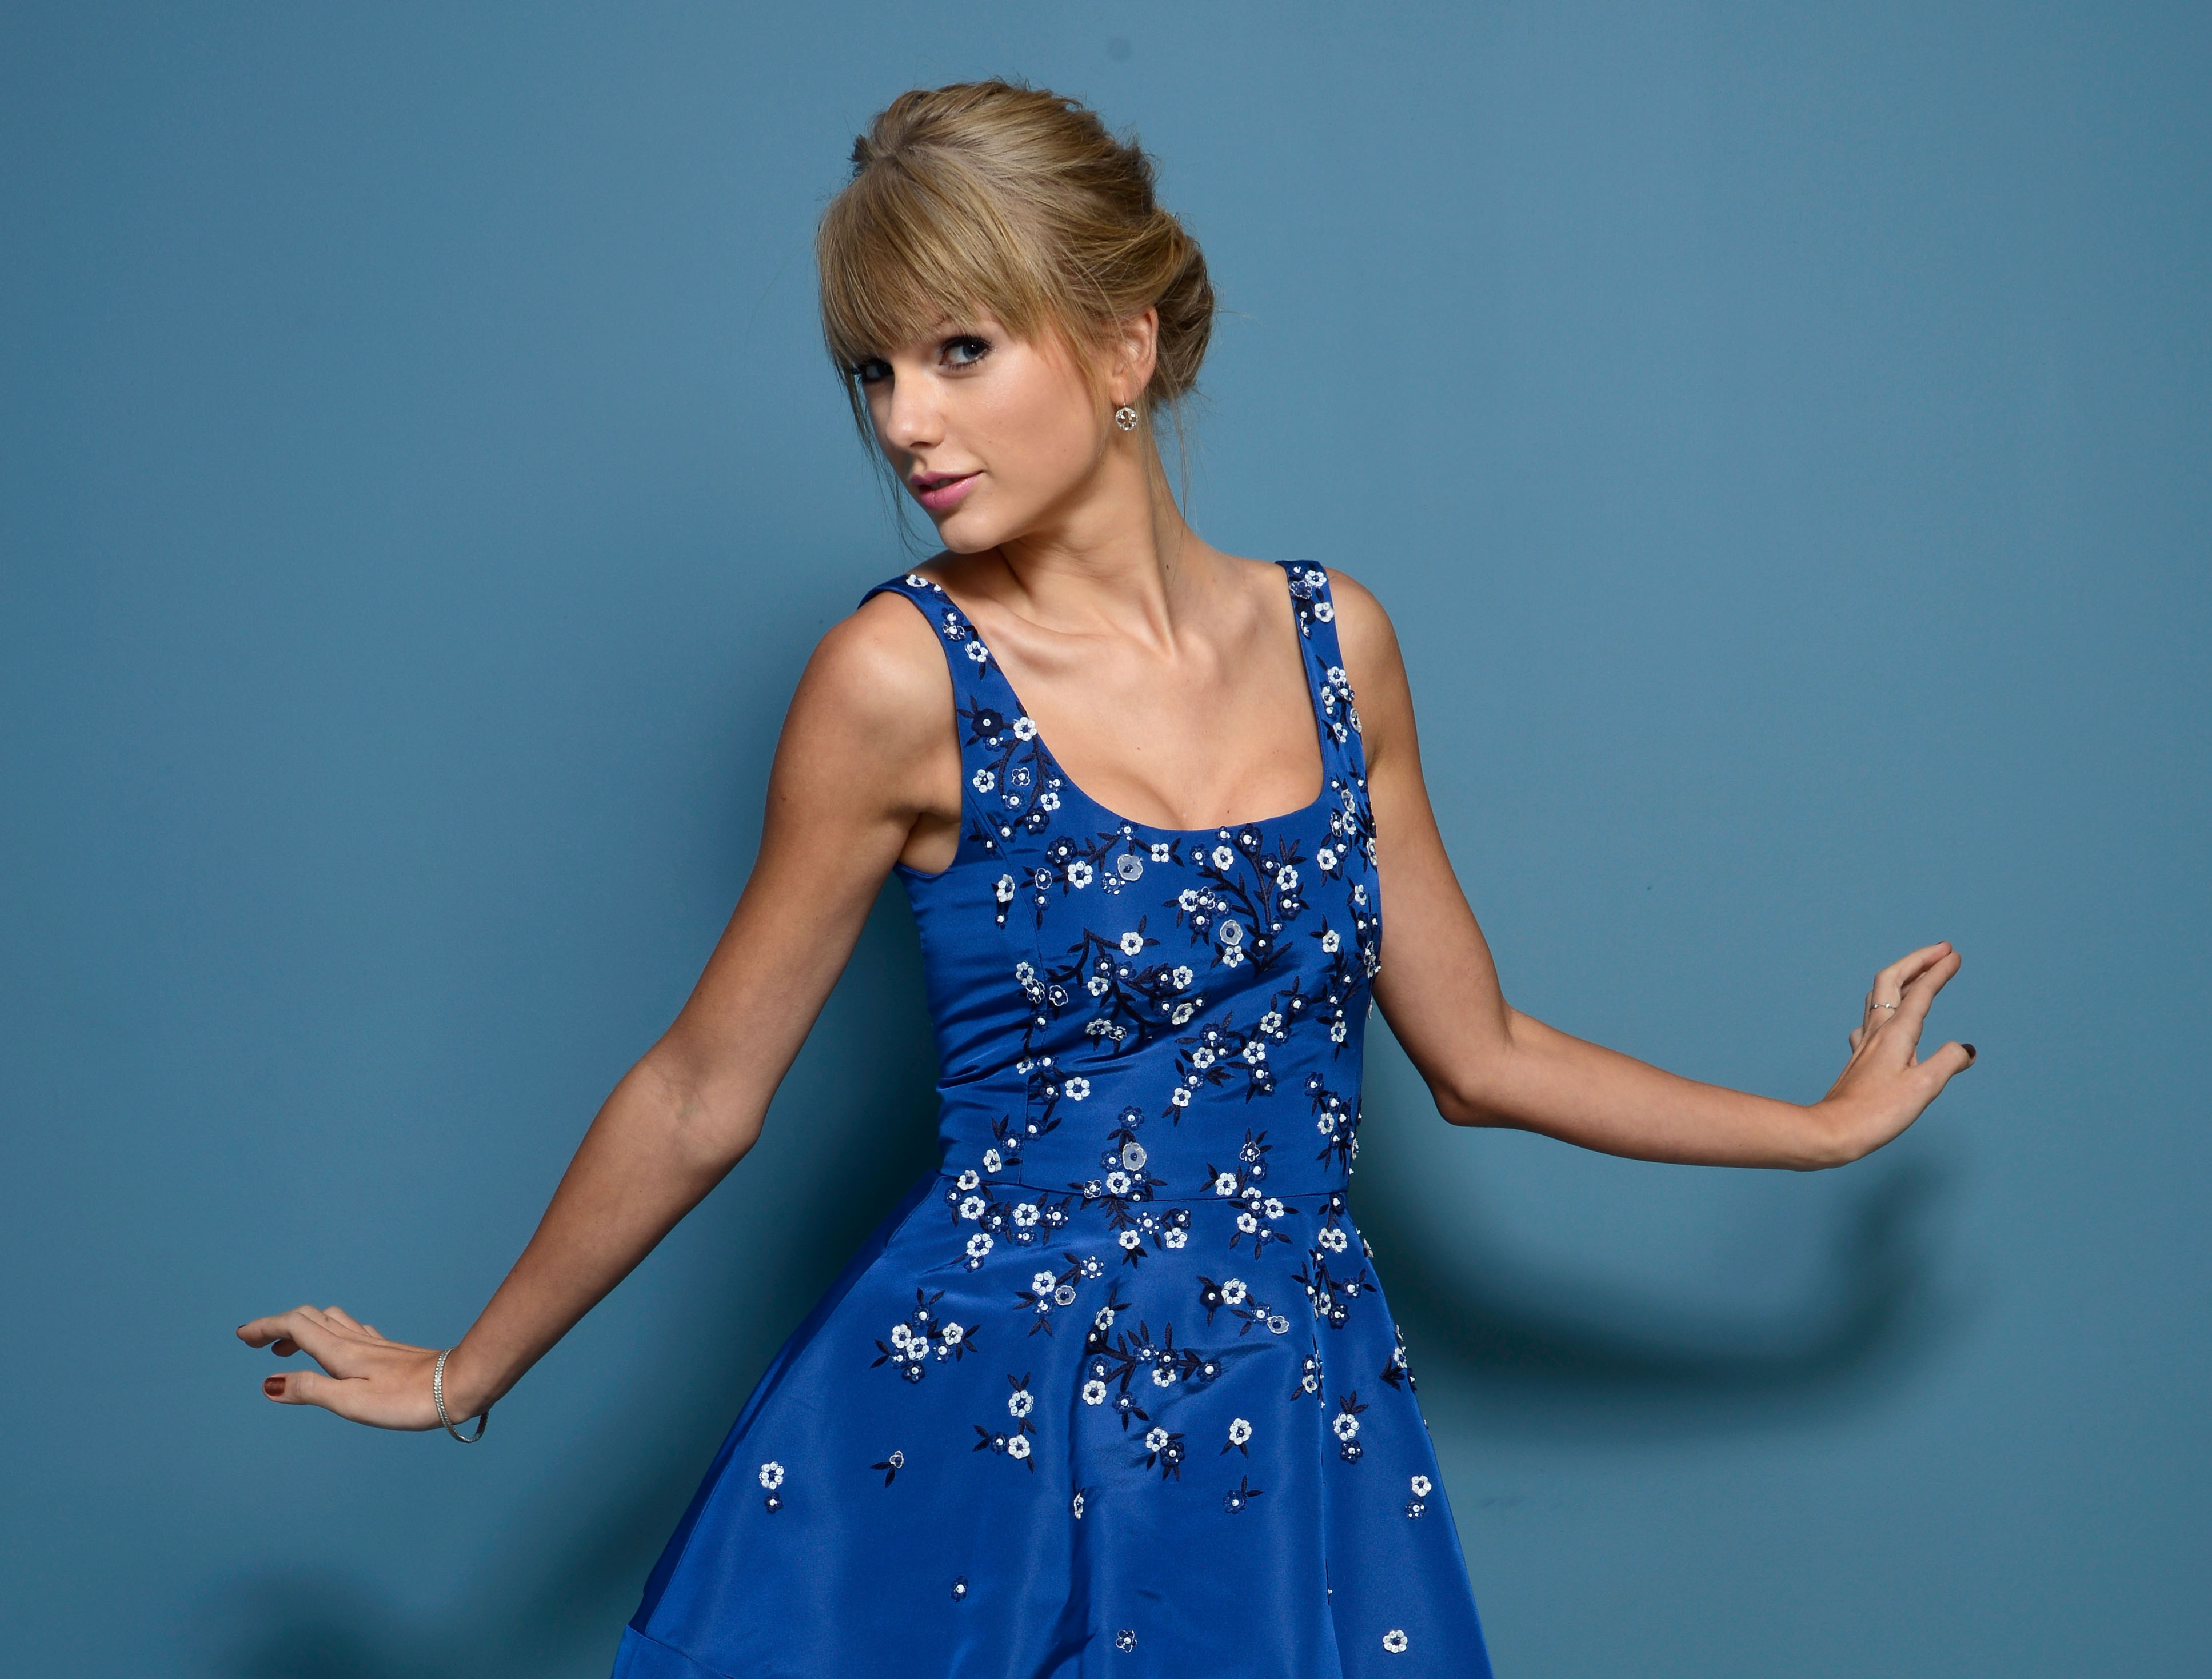 TORONTO, ON - SEPTEMBER 09: Actress Taylor Swift of 'One Chance' poses at the Guess Portrait Studio during 2013 Toronto International Film Festival on September 9, 2013 in Toronto, Canada. (Photo by Larry Busacca/Getty Images)